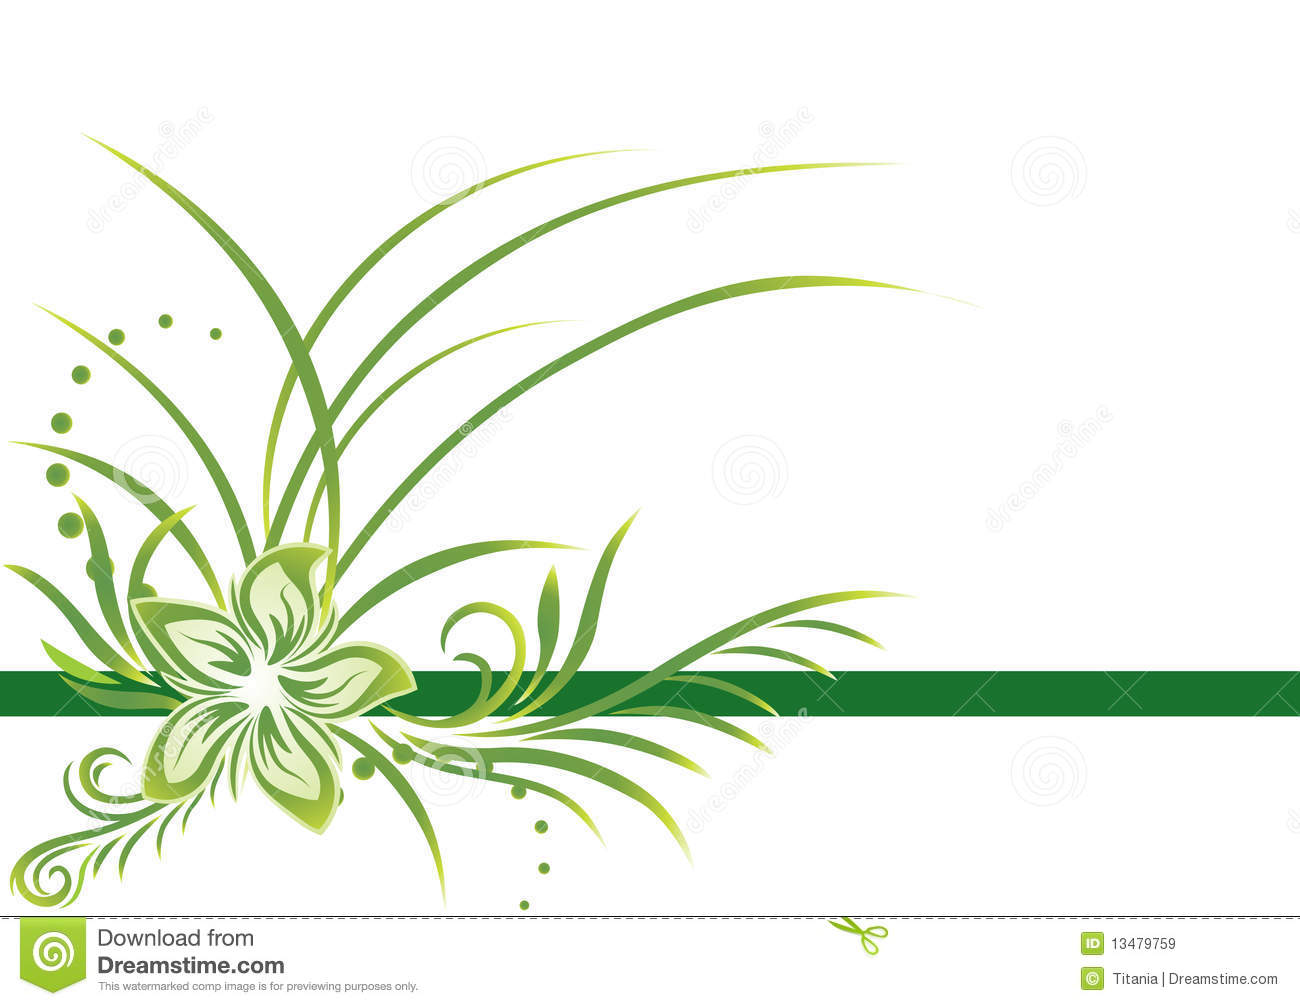 Green Border Royalty Free Stock Images - Image: 13479759